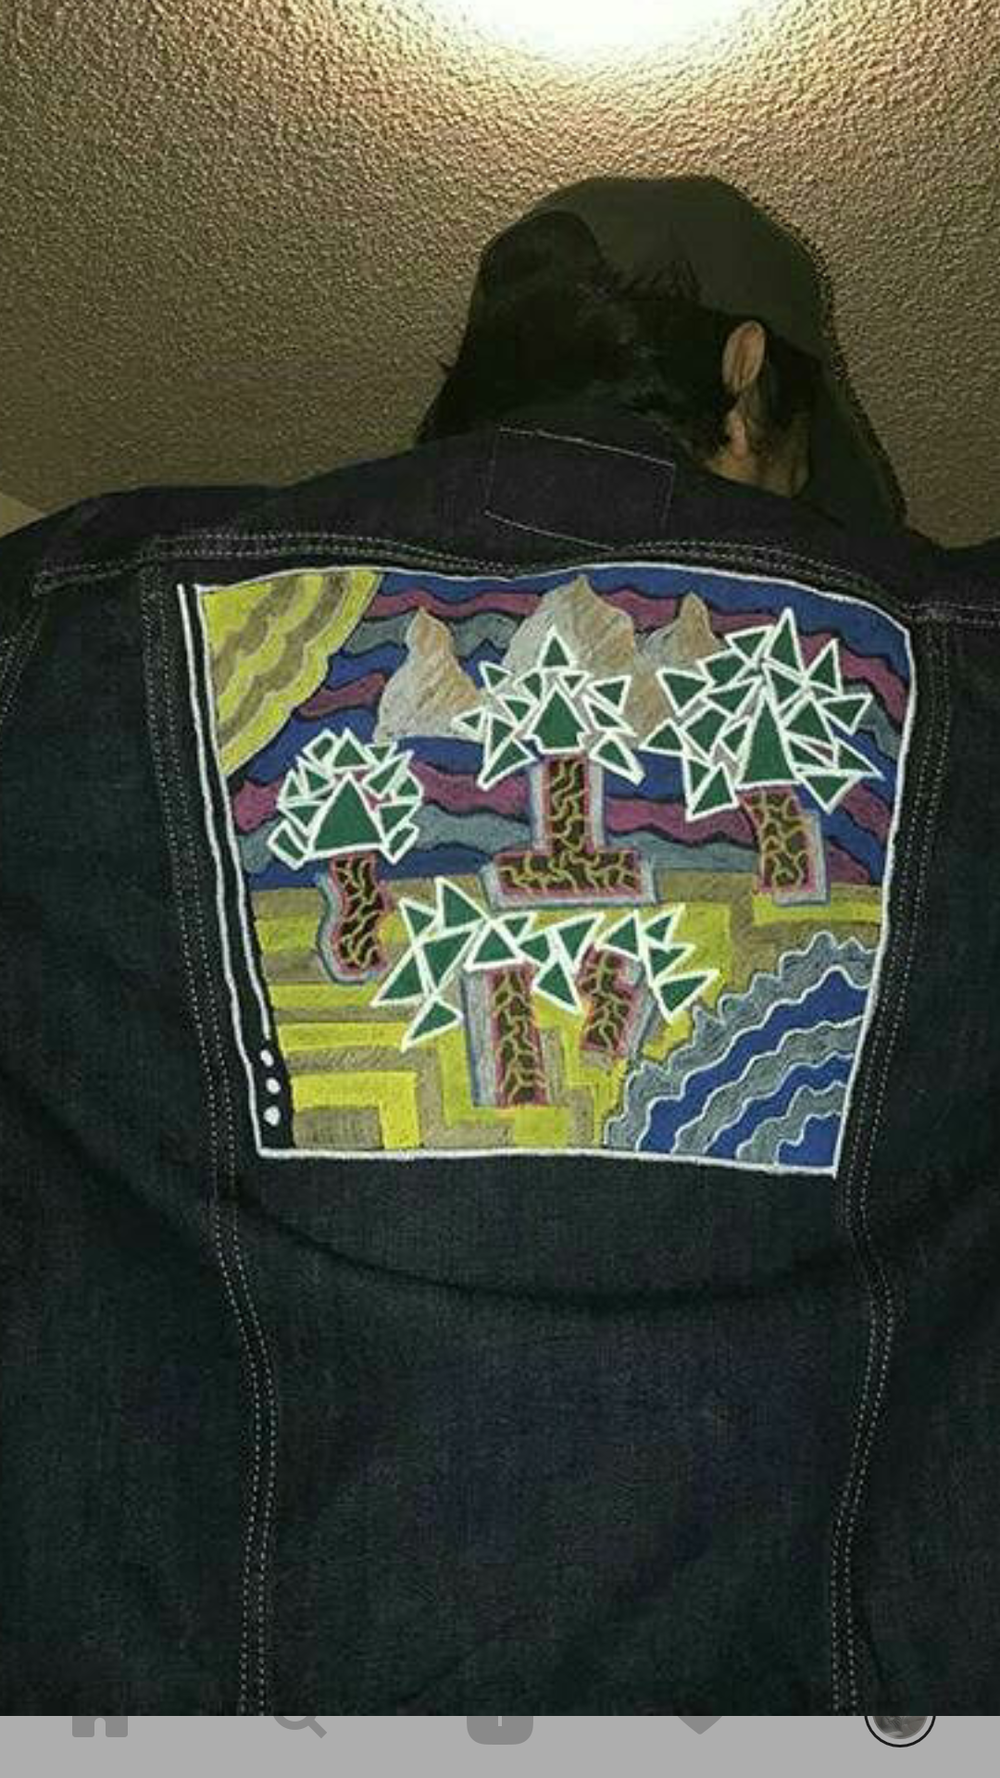 A Forgotten Place- Paint markers on jean jacket